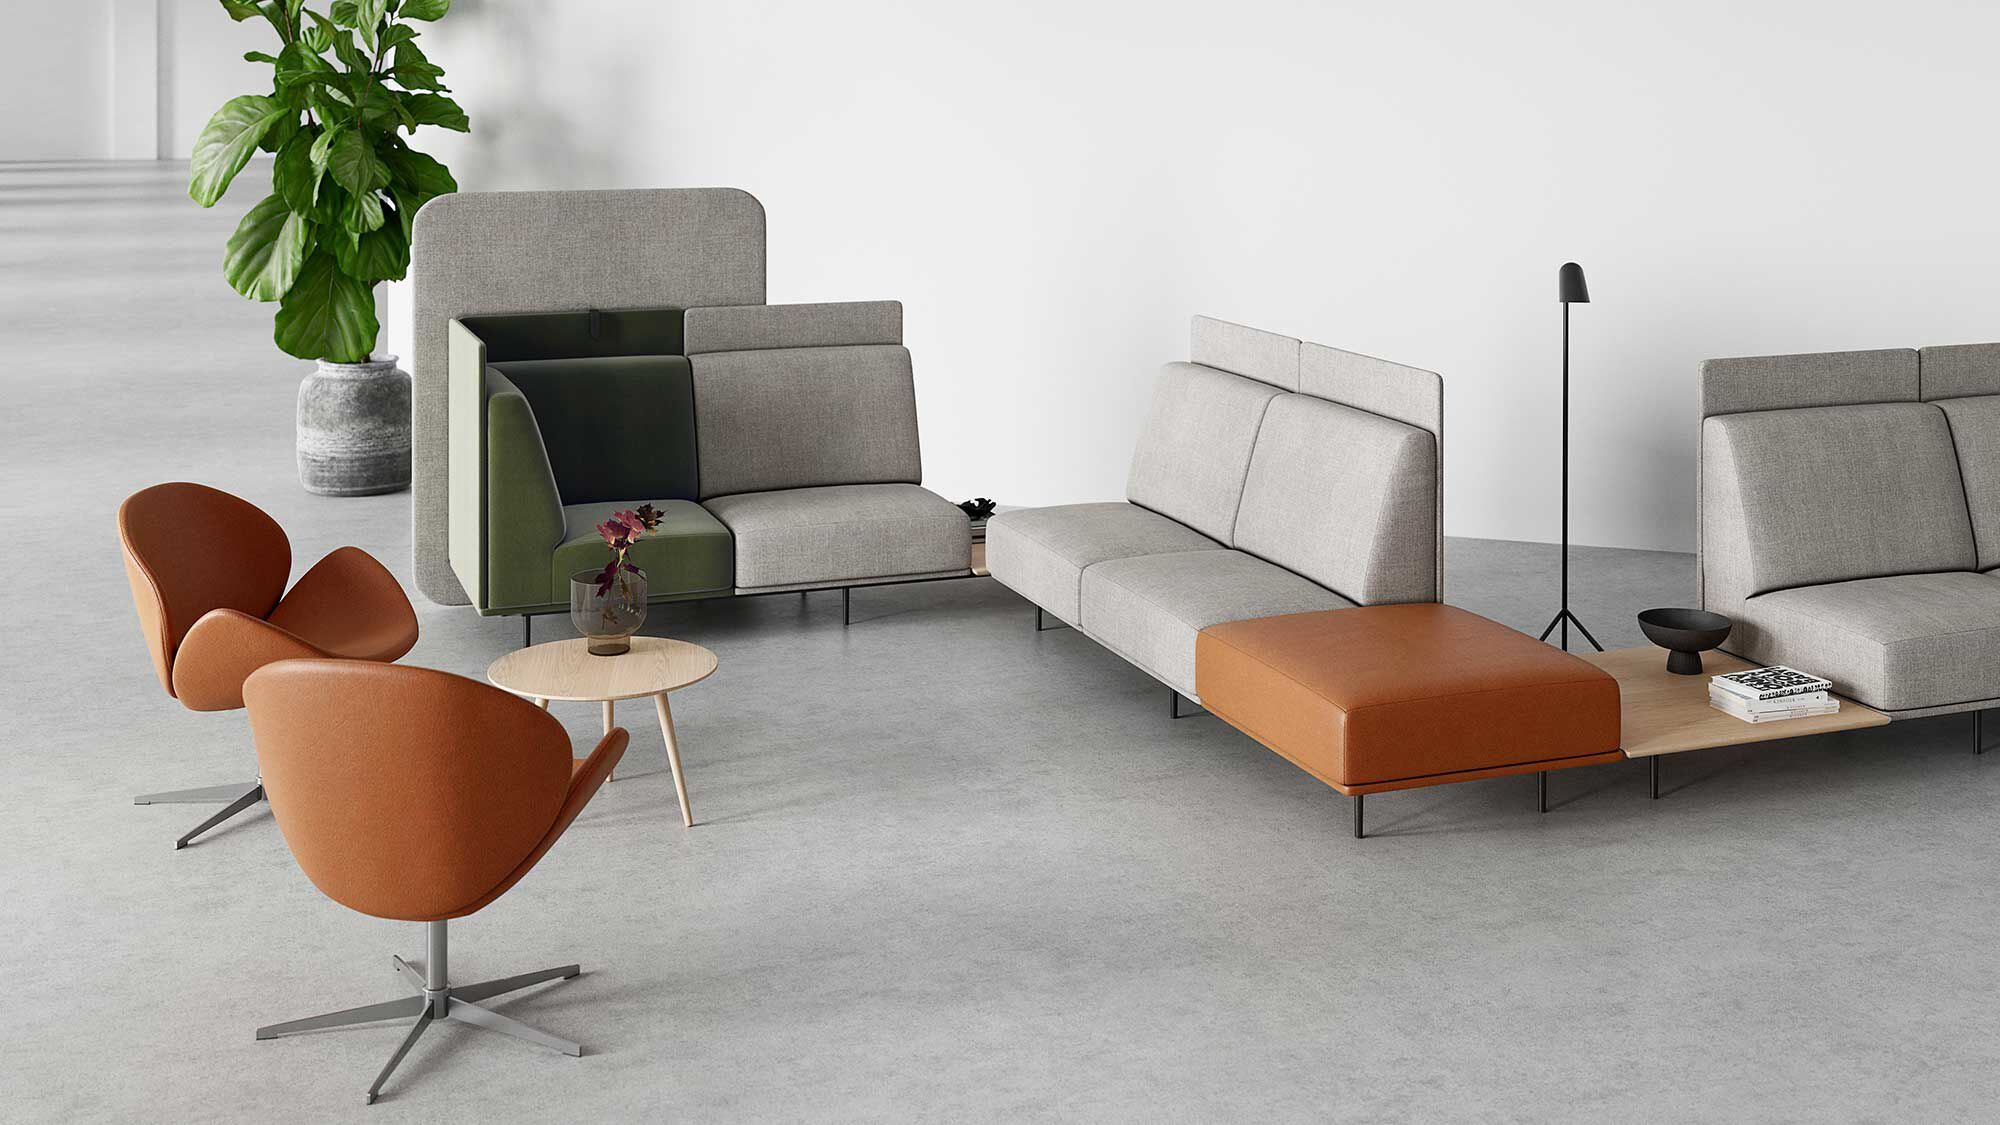 Designs by Henrik Pedersen - Toulouse sofa